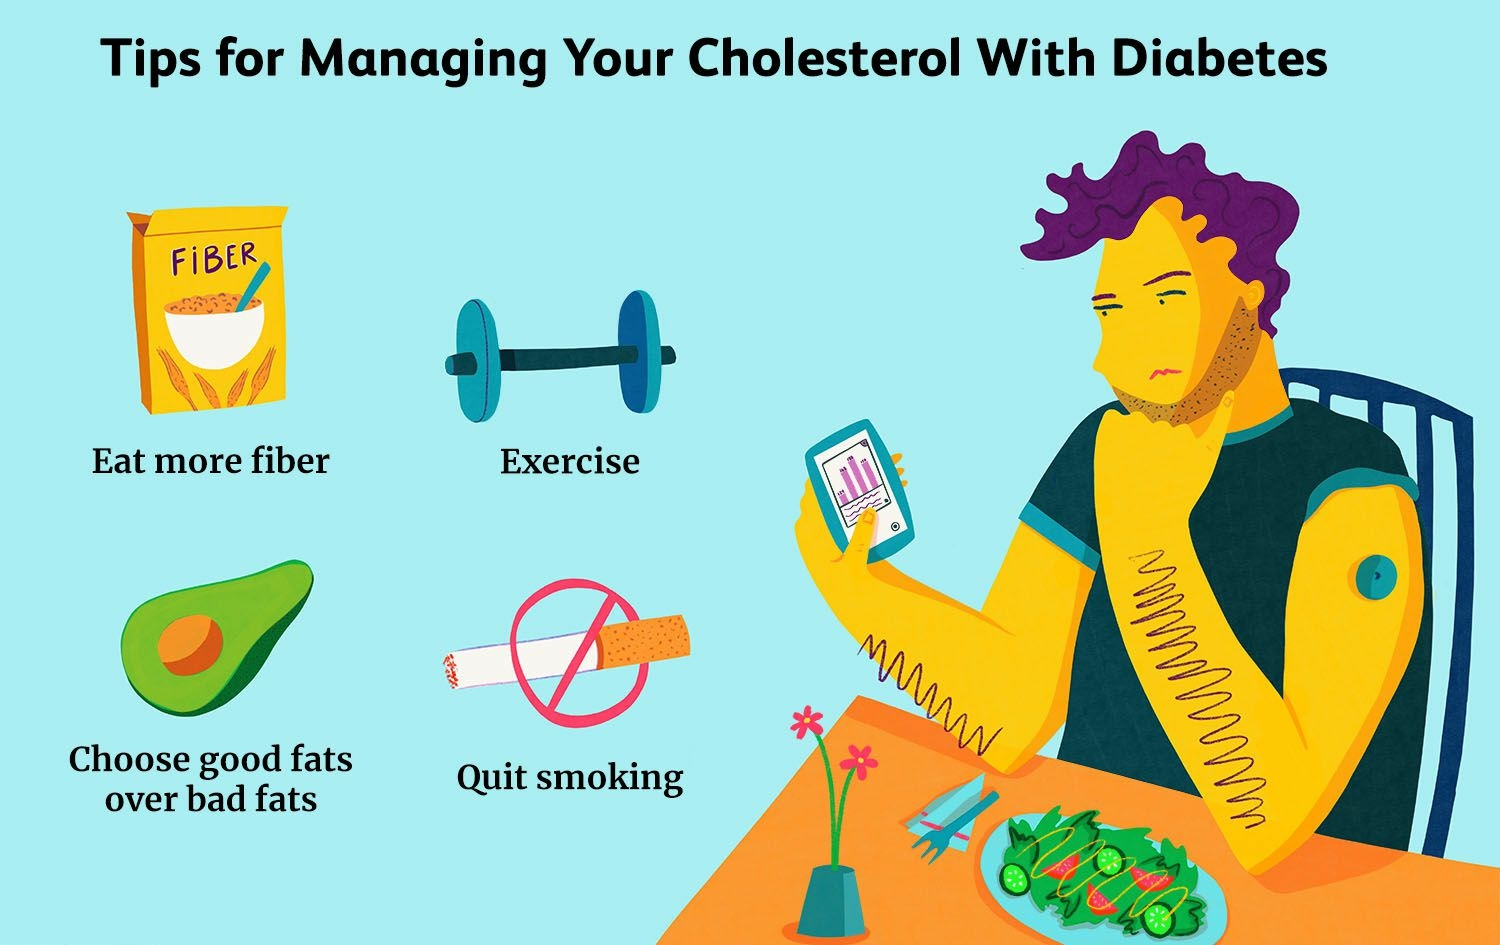 guidelines-for-high-cholesterol-and-diabetes-697813-color1b-99ed648078d74592ac667c8533065003